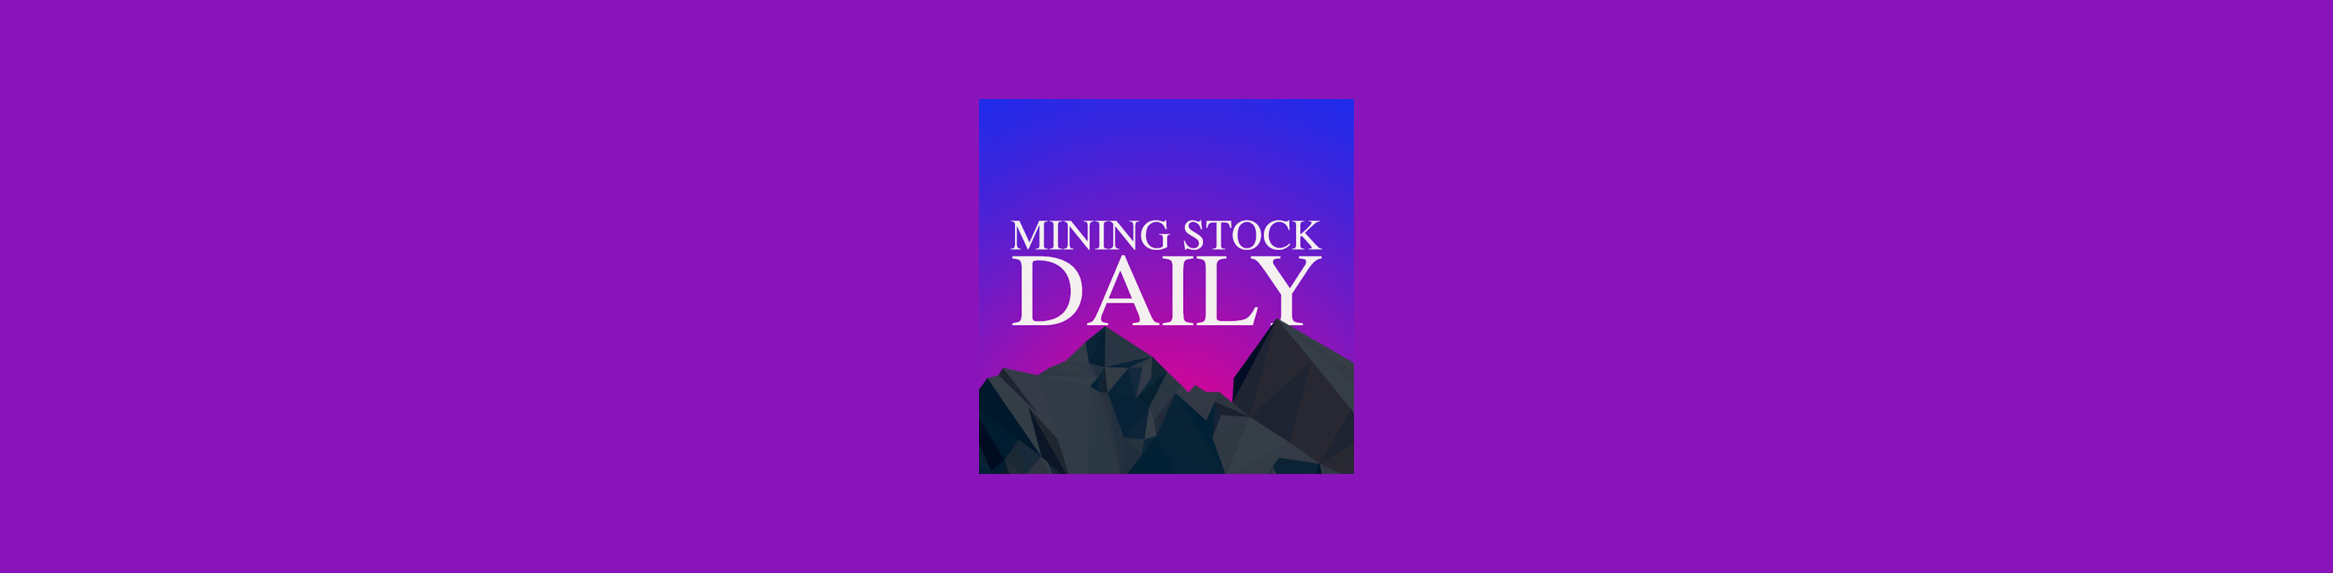 crux investor: The Best Mining Resources for Investors - mining stock daily